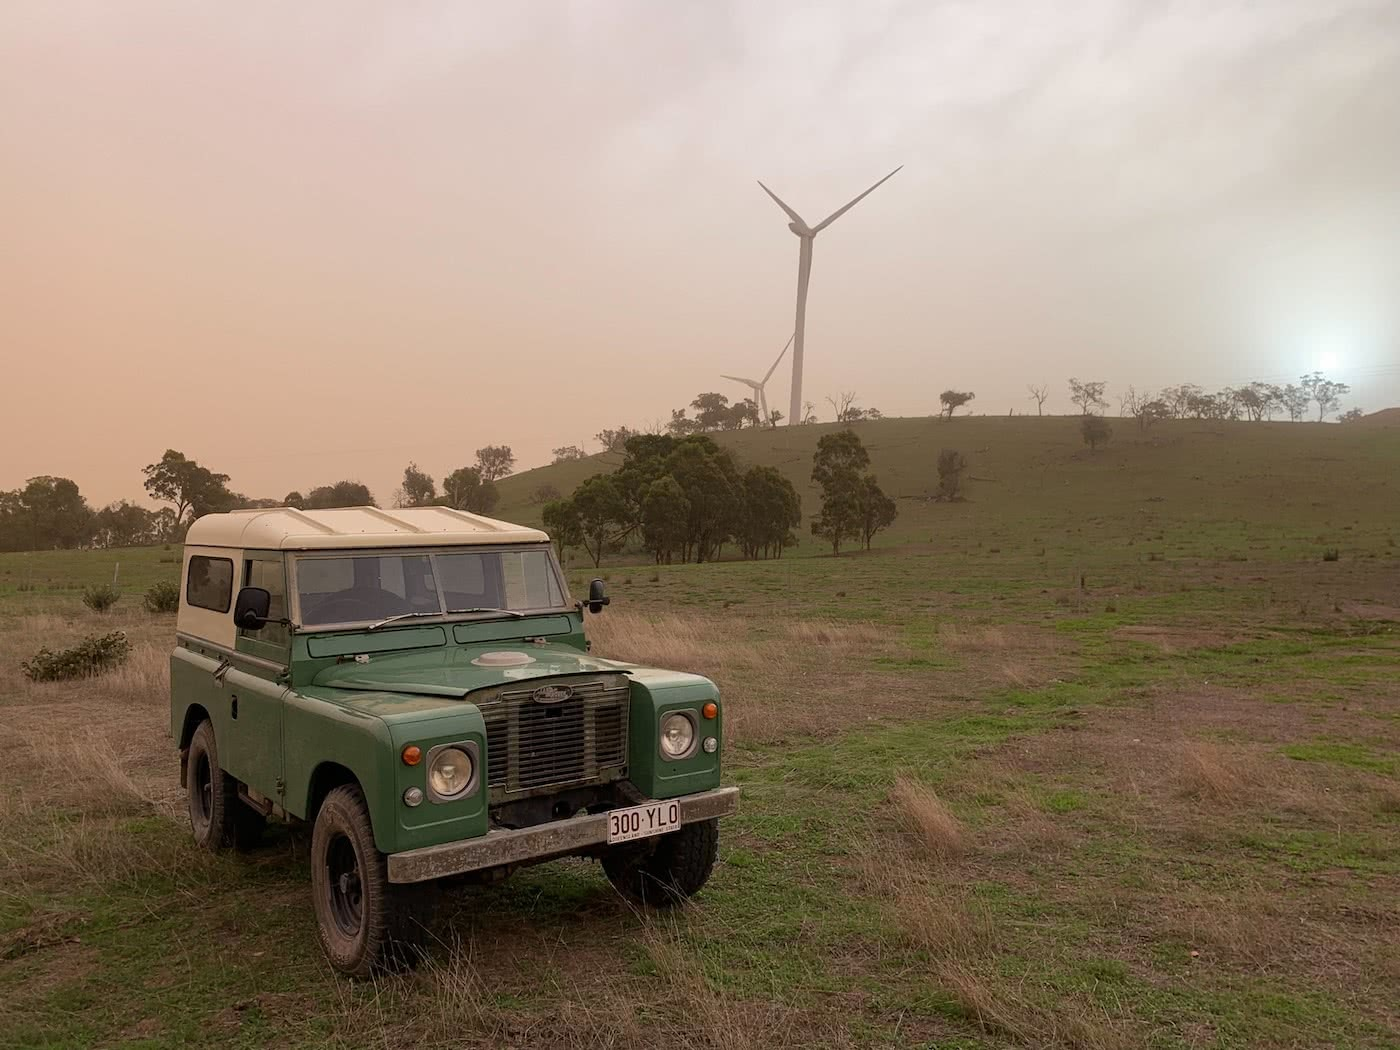 Aussie Startup Electrifying Off Road Adventures Mattie Gould jaunt, electric land rover, sustainability